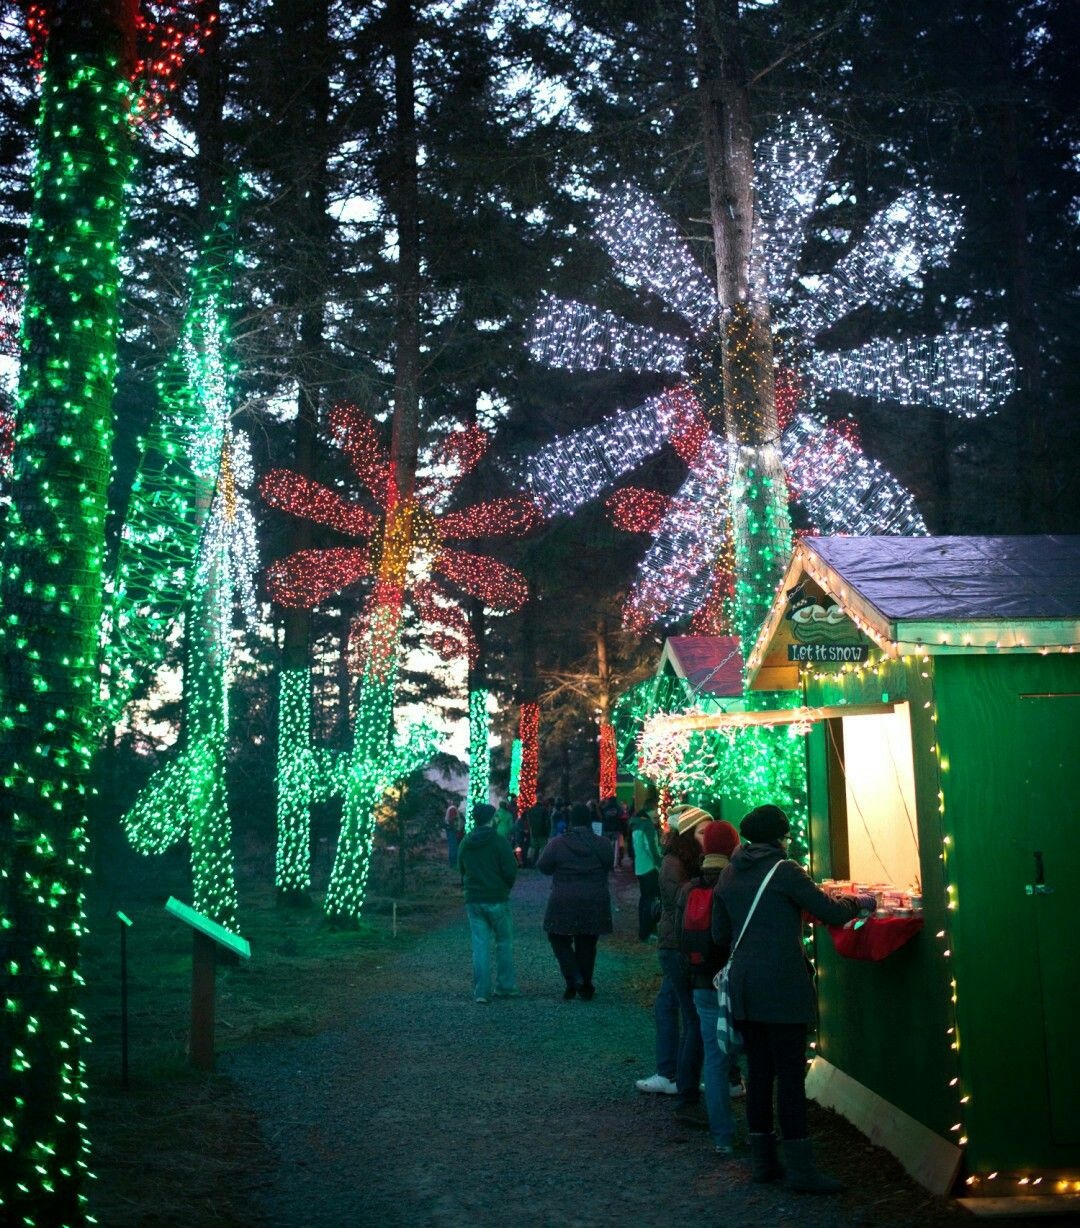 Best Places To Visit For Christmas.The Best Places To Visit Christmas Lights In Oregon